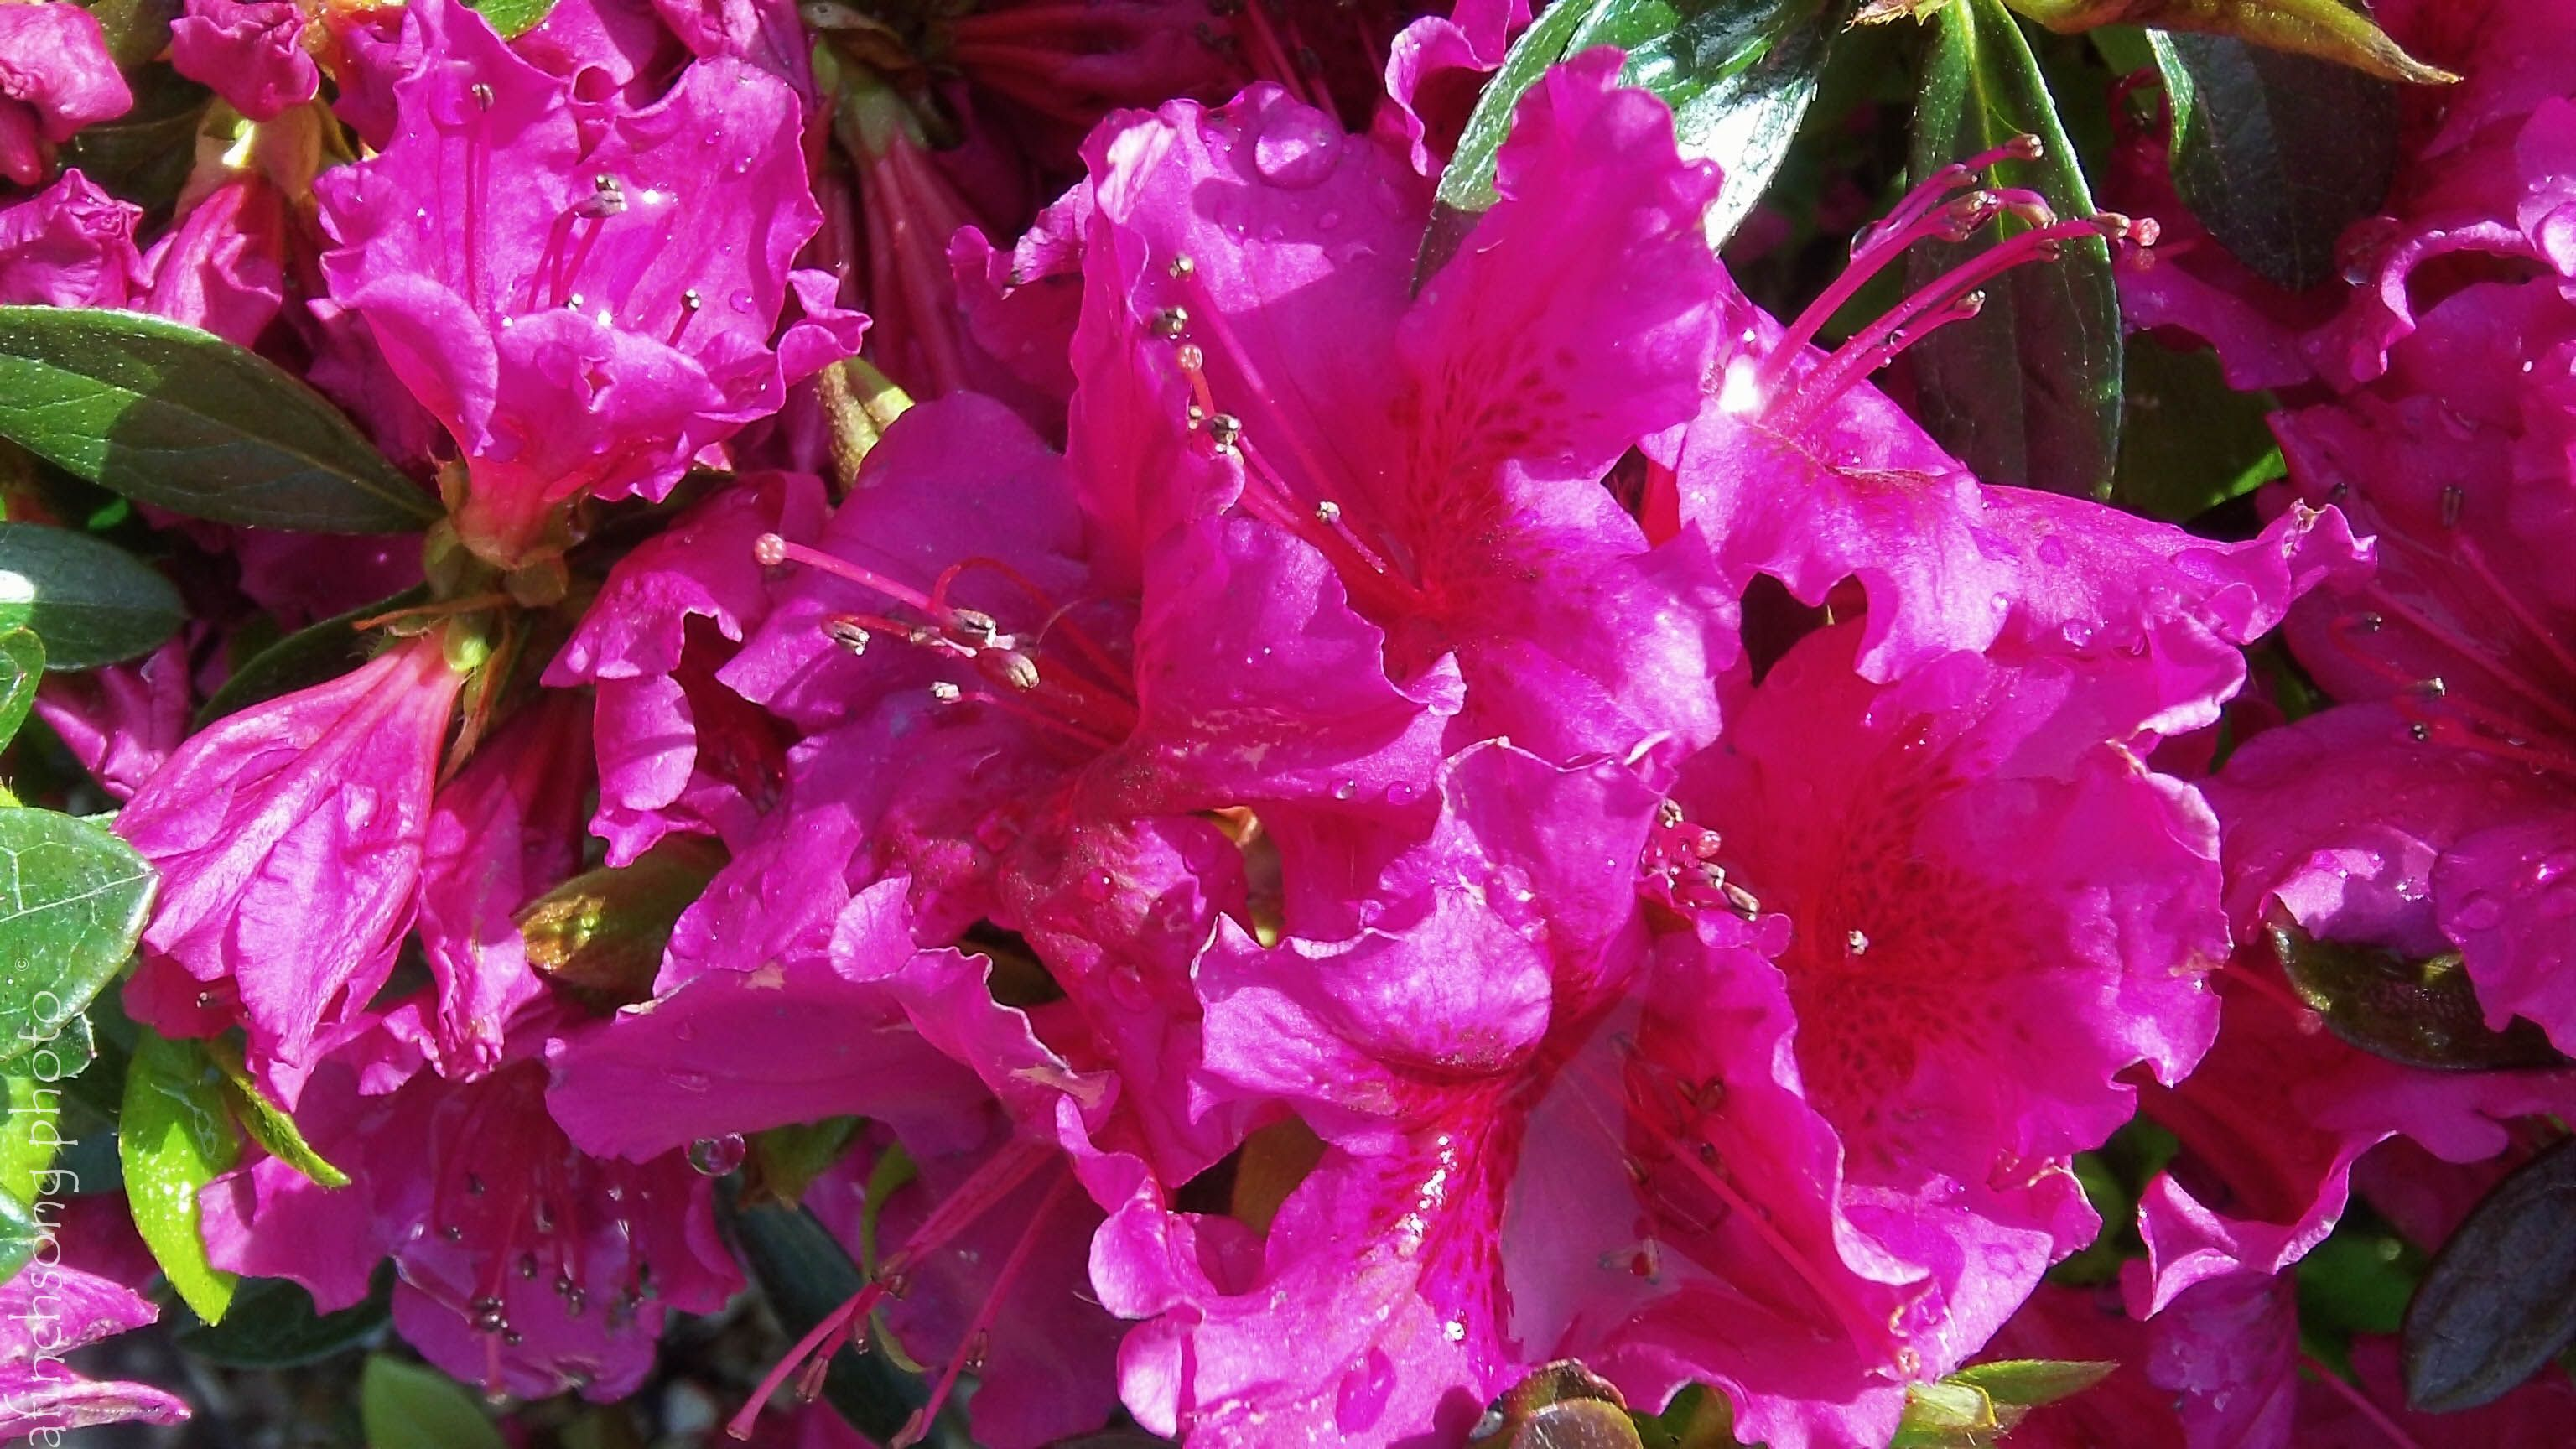 Azalea 'Girard's Purple'	GIRARD'S PURPLE AZALEA	flowering evergreen shrub	part sun	Size in 10 years: 3x3	Dense compact rounded	BLOOM: Dark purple	Single	Mid season	FOLIAGE: Evergreen	Well drained acidic soil	Protect from winter winds